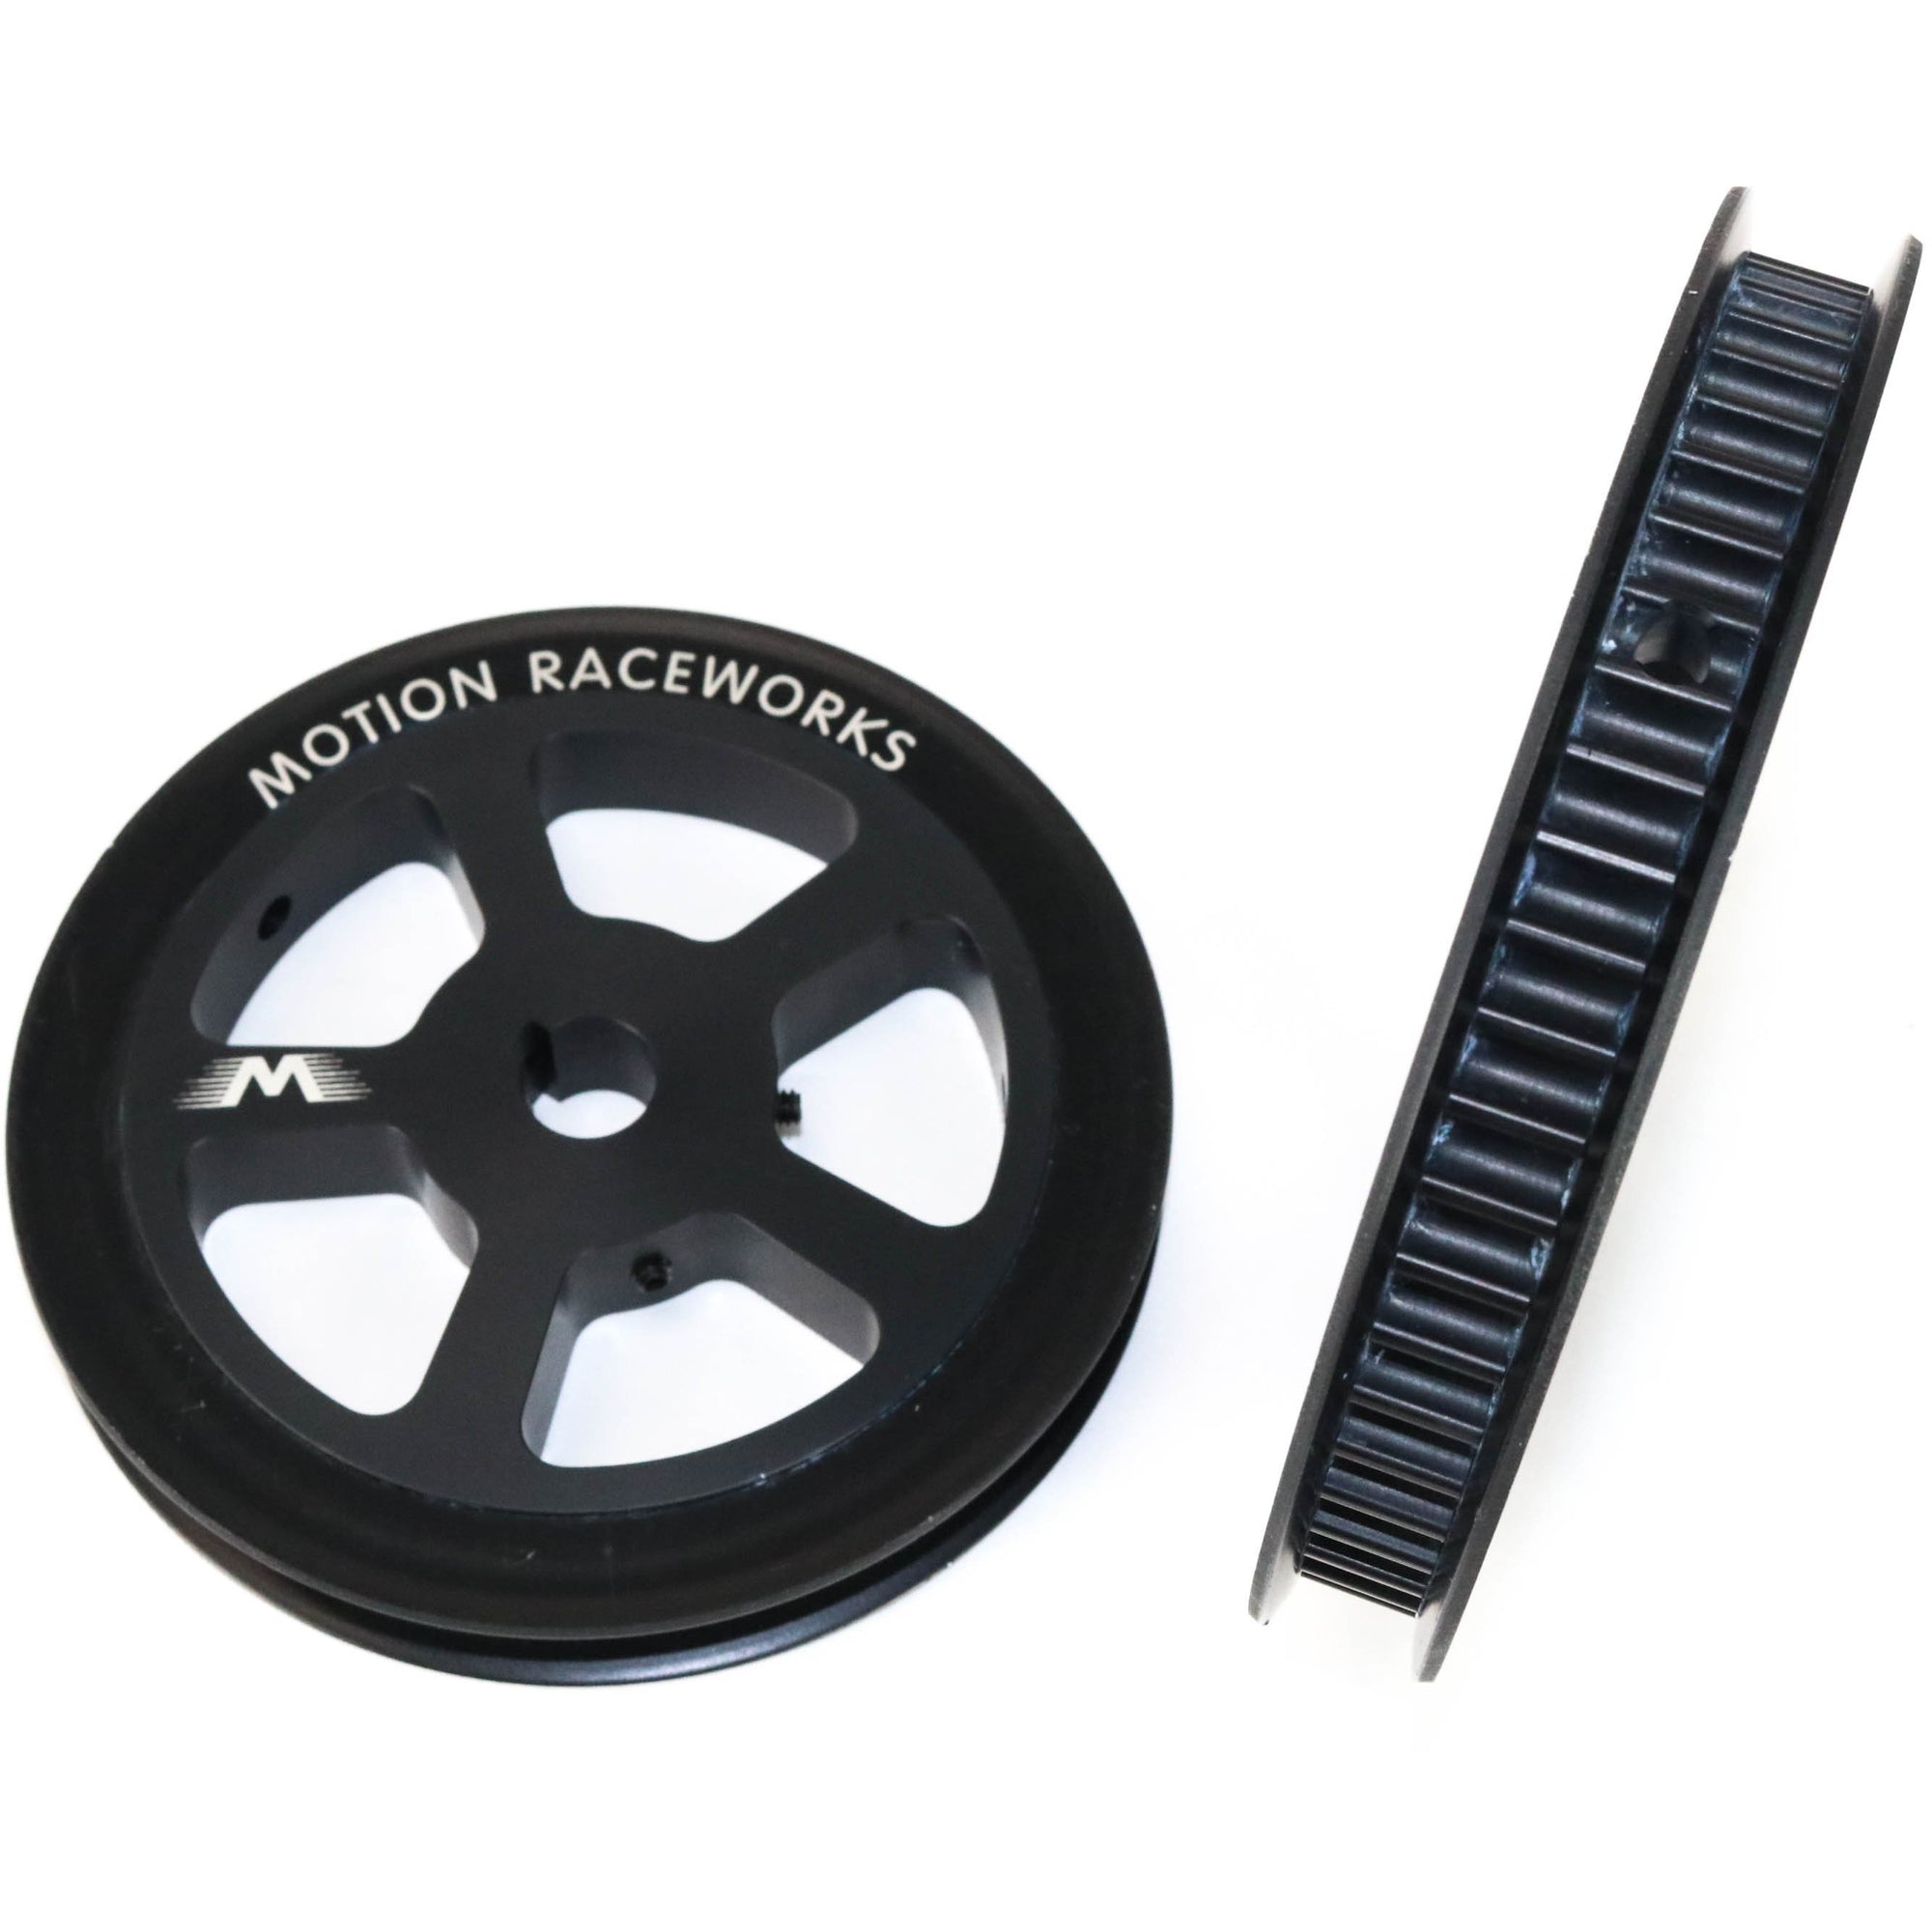 Motion Raceworks 56 tooth 8mm HTD Pulley for 5/8 Hex shaft-Motion Raceworks-Motion Raceworks